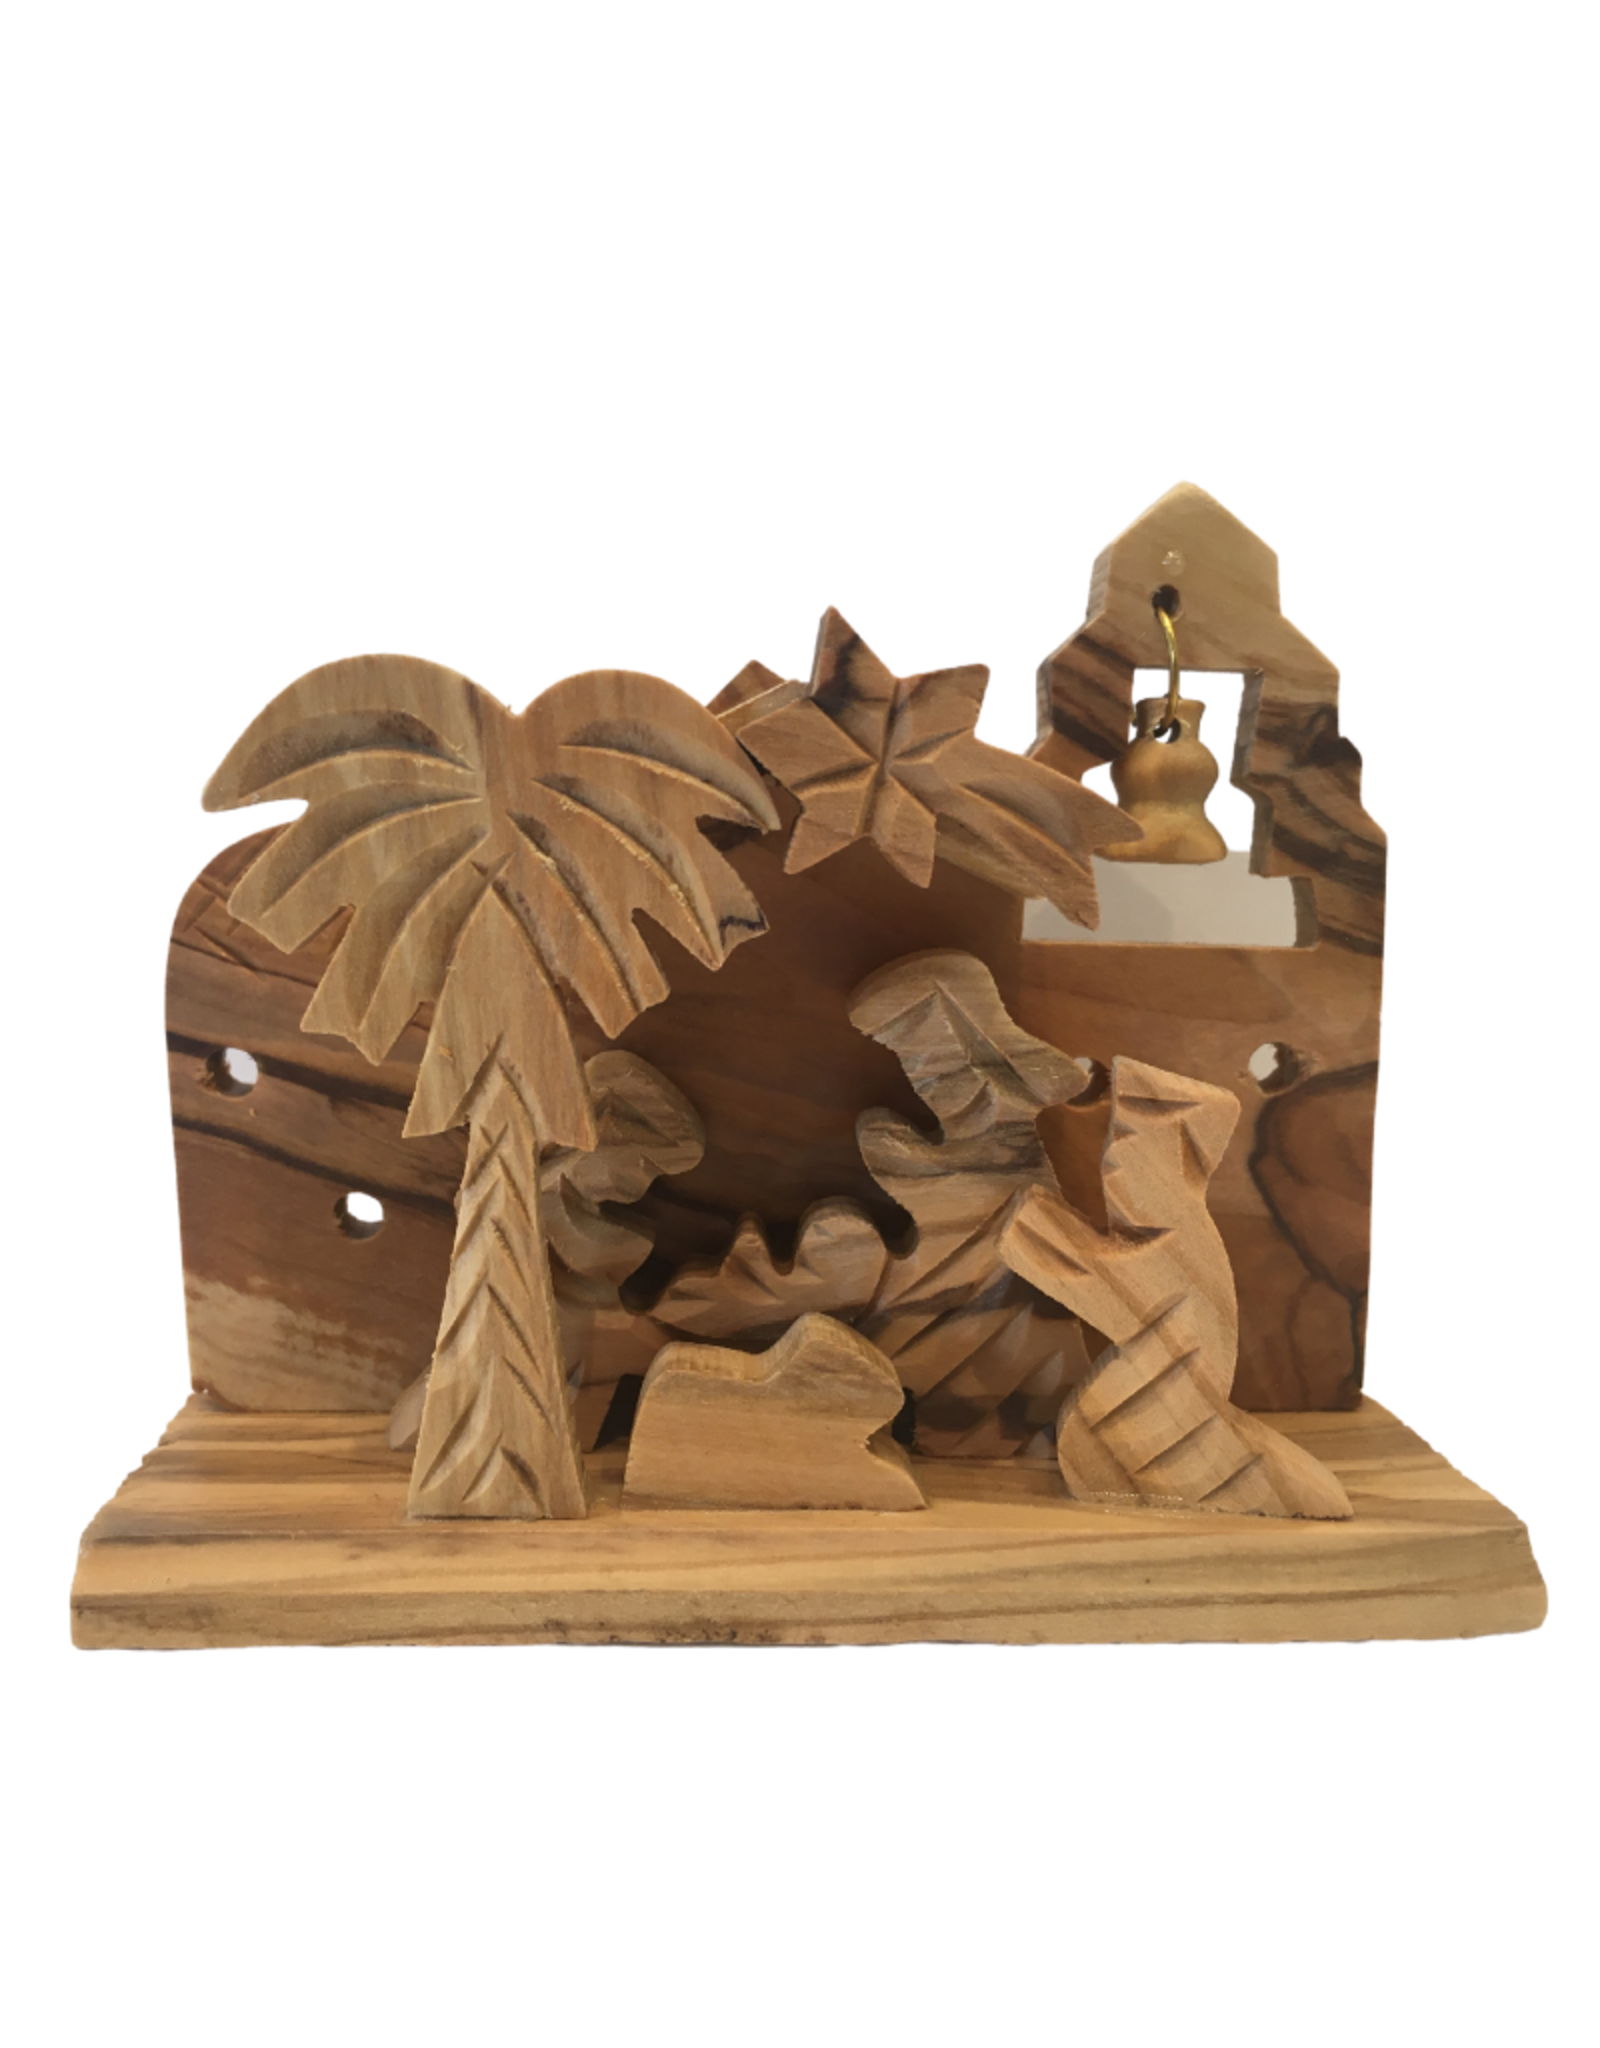 Ten Thousand Villages Small Olivewood Nativity